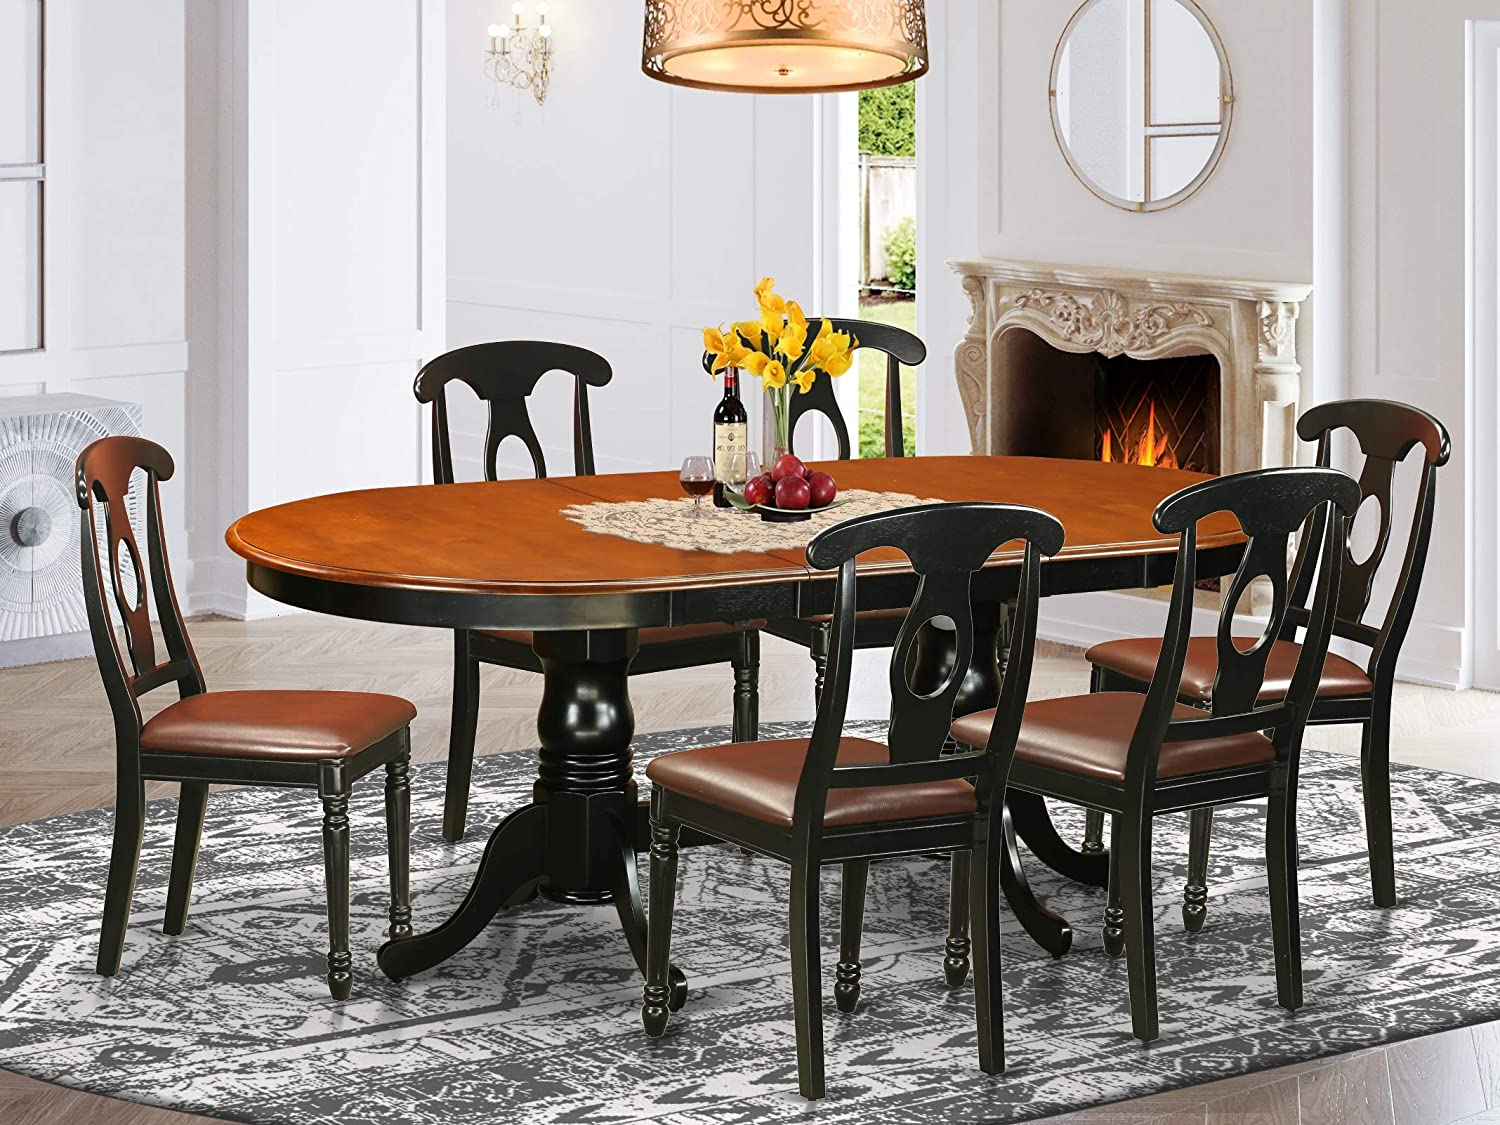 Amazon Com 7 Pc Dining Room Set Dining Table With 6 Wooden Dining Chairs Table Chair Sets